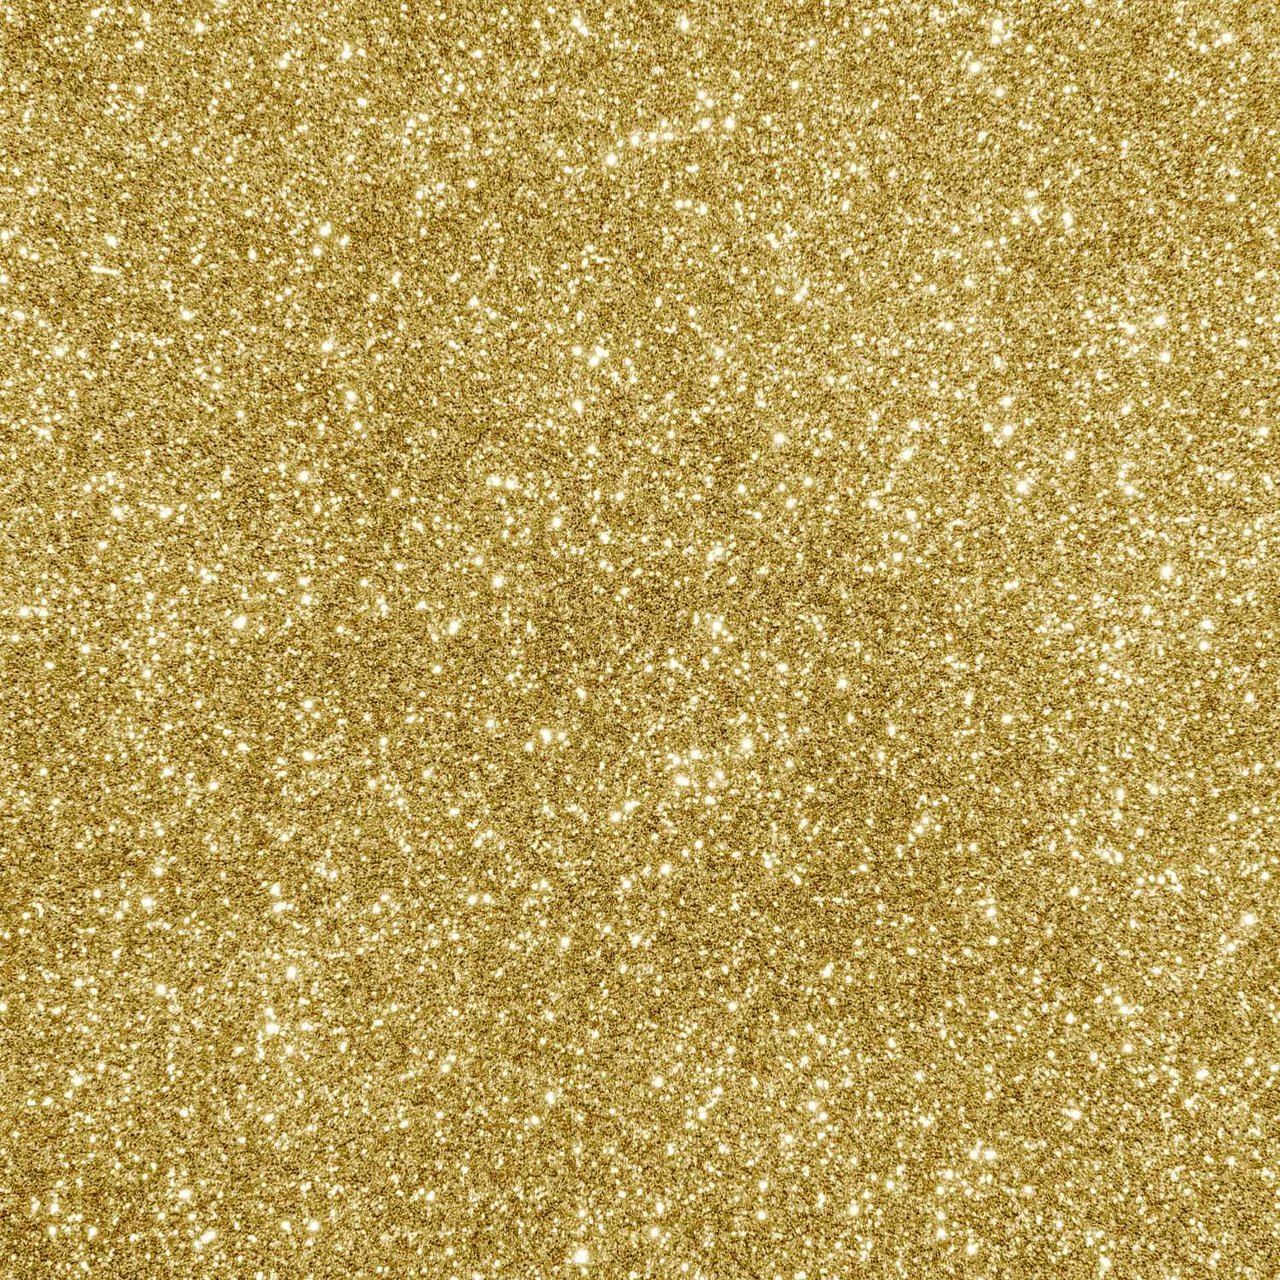 Cricut Joy Iron On Glitter Bügelfolie 13,9x48,2cm gold von Cricut